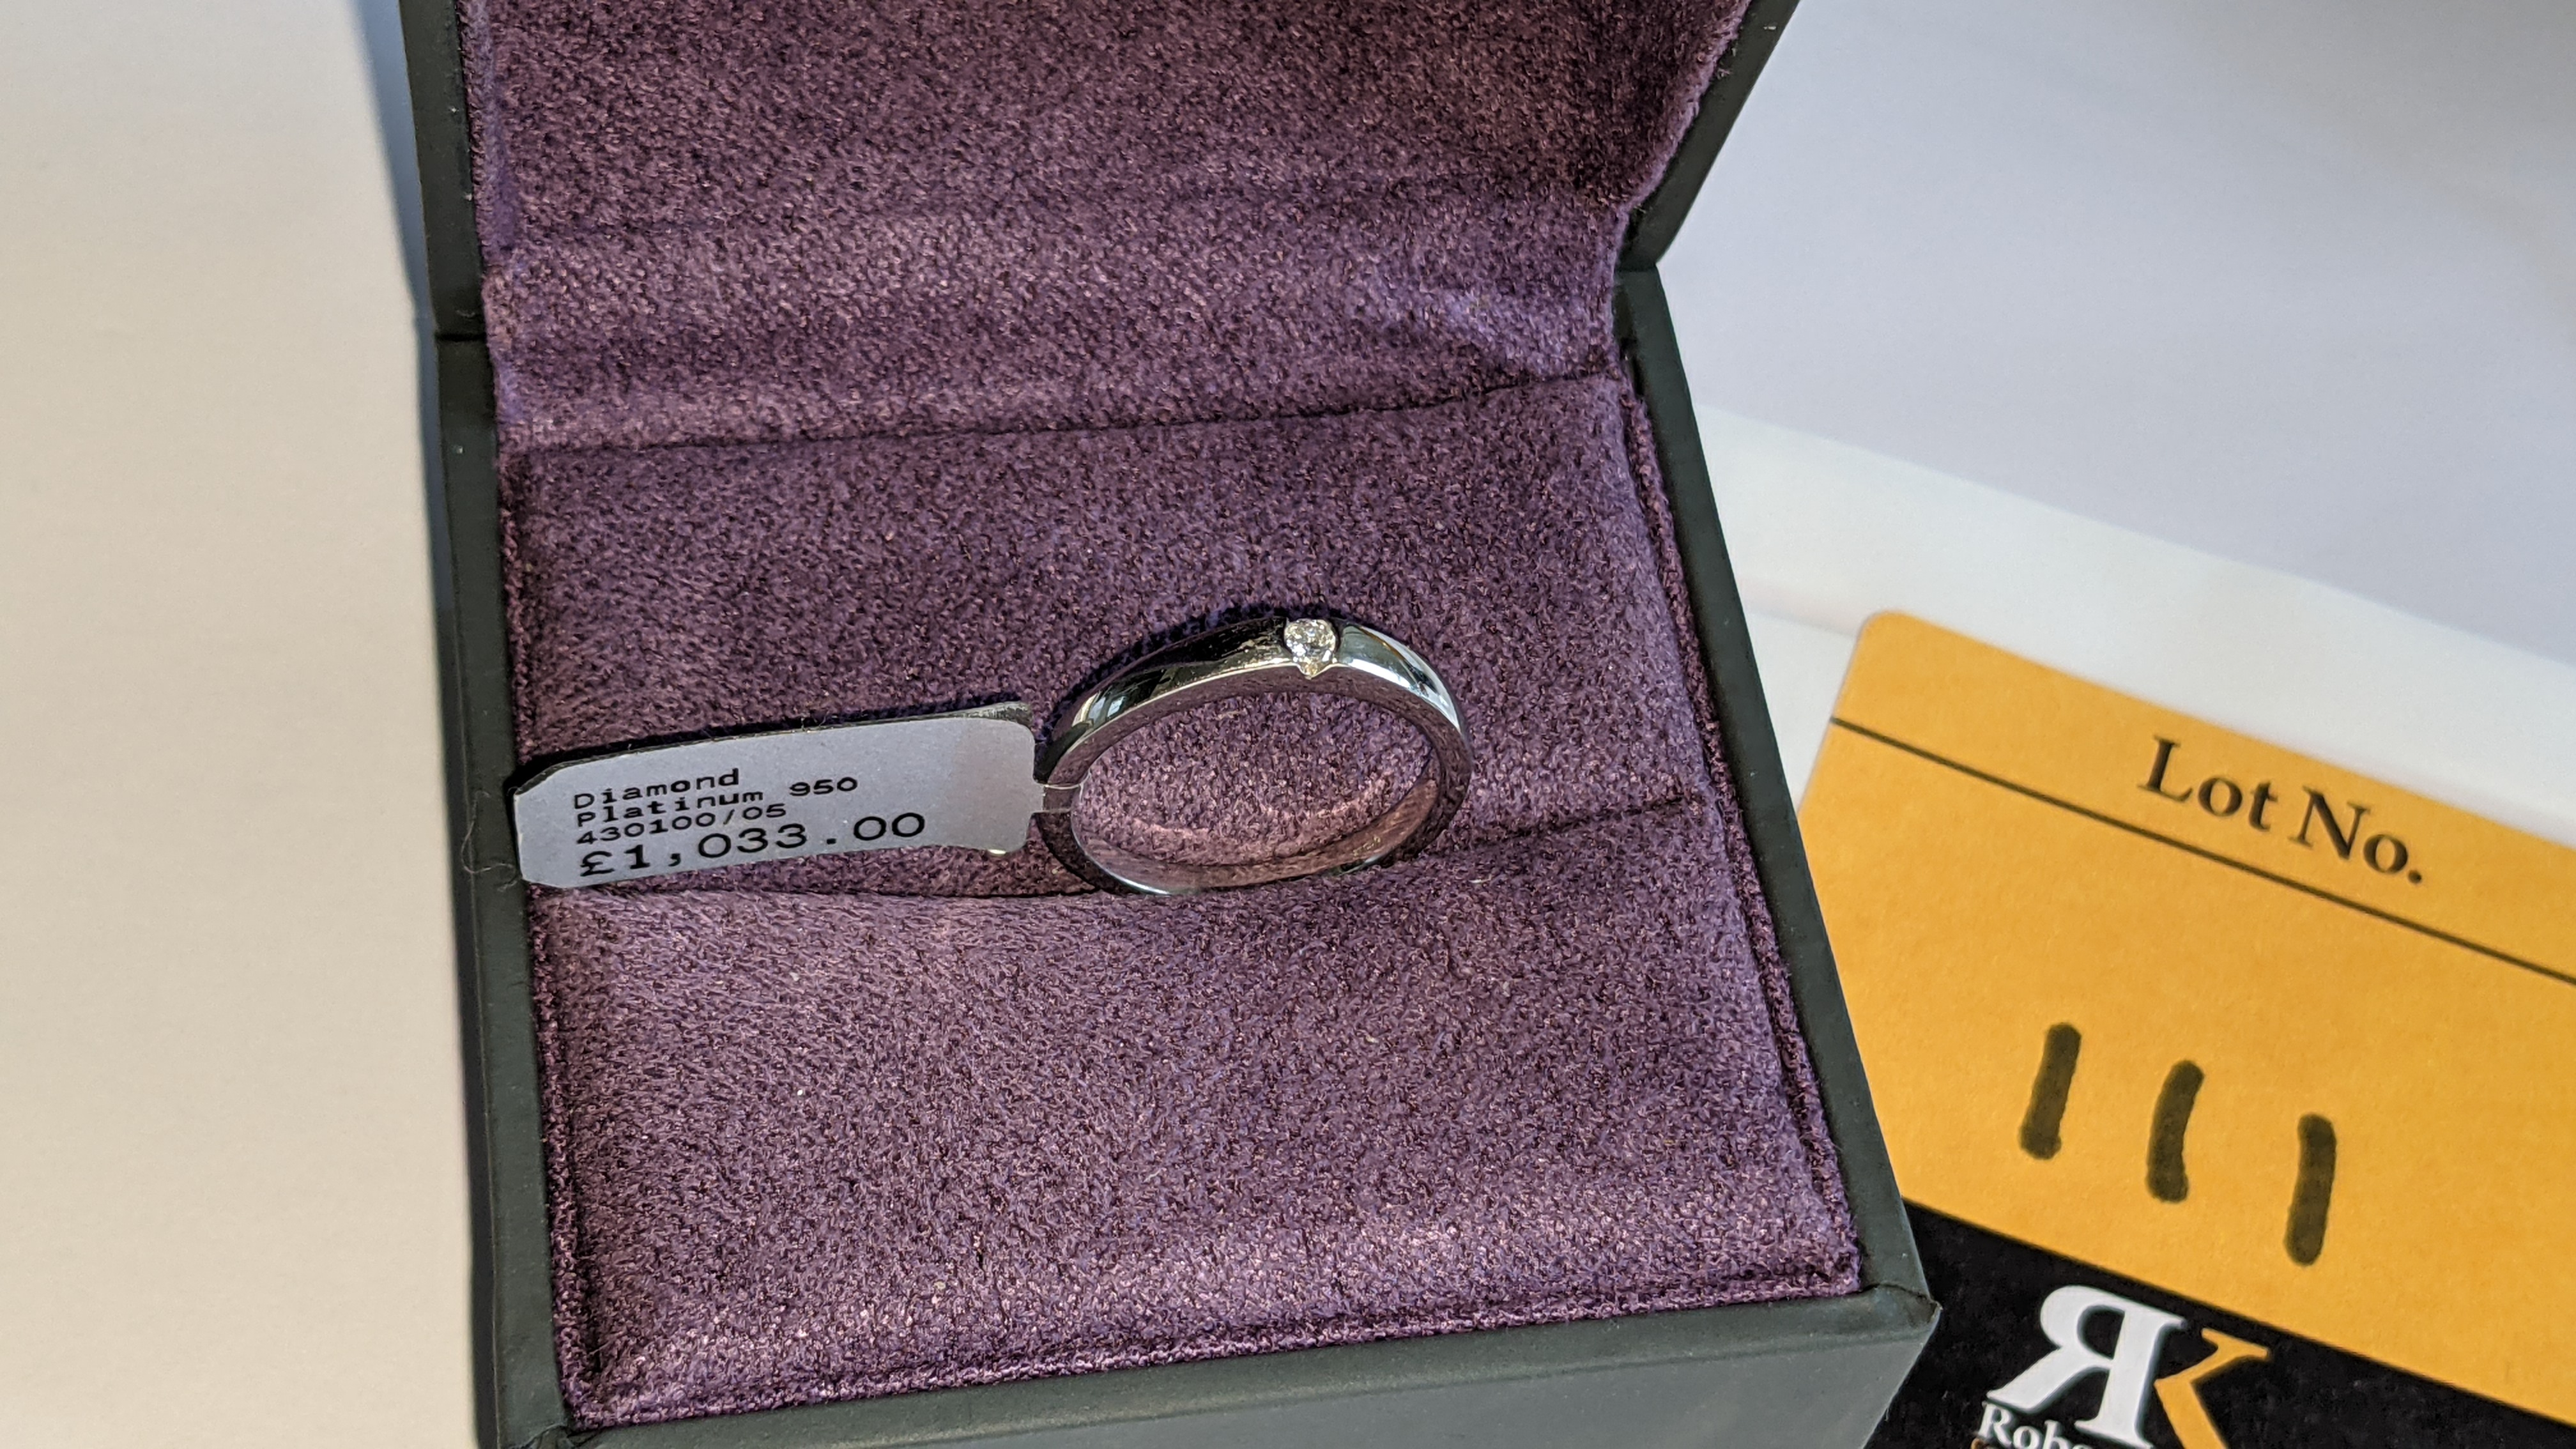 Platinum 950 ring with 0.05ct H/Si diamond. RRP £1,033 - Image 5 of 13